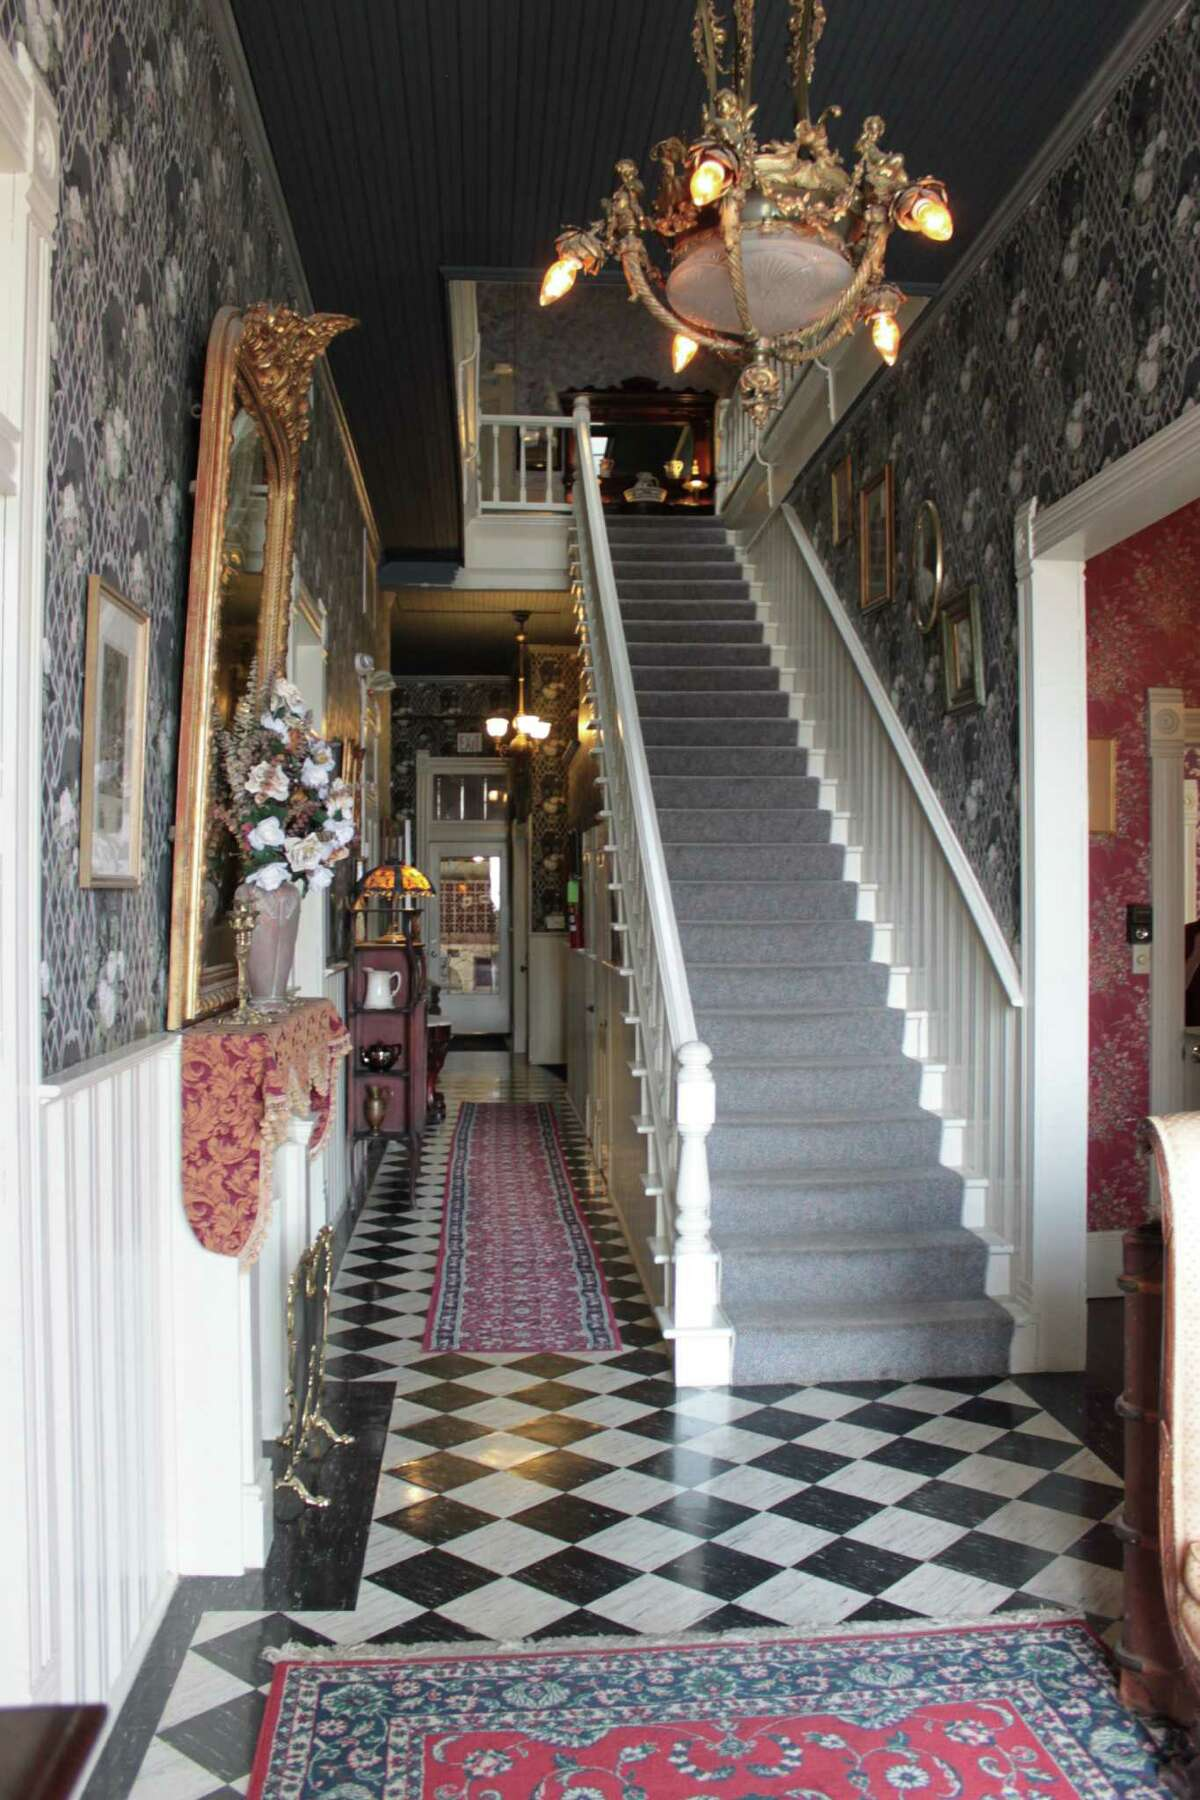 Guests sometimes say they see the spirit of Penelope, a former inkeeper, standing at the top of the stairs at the Prince Solms Inn in New Braunfels.